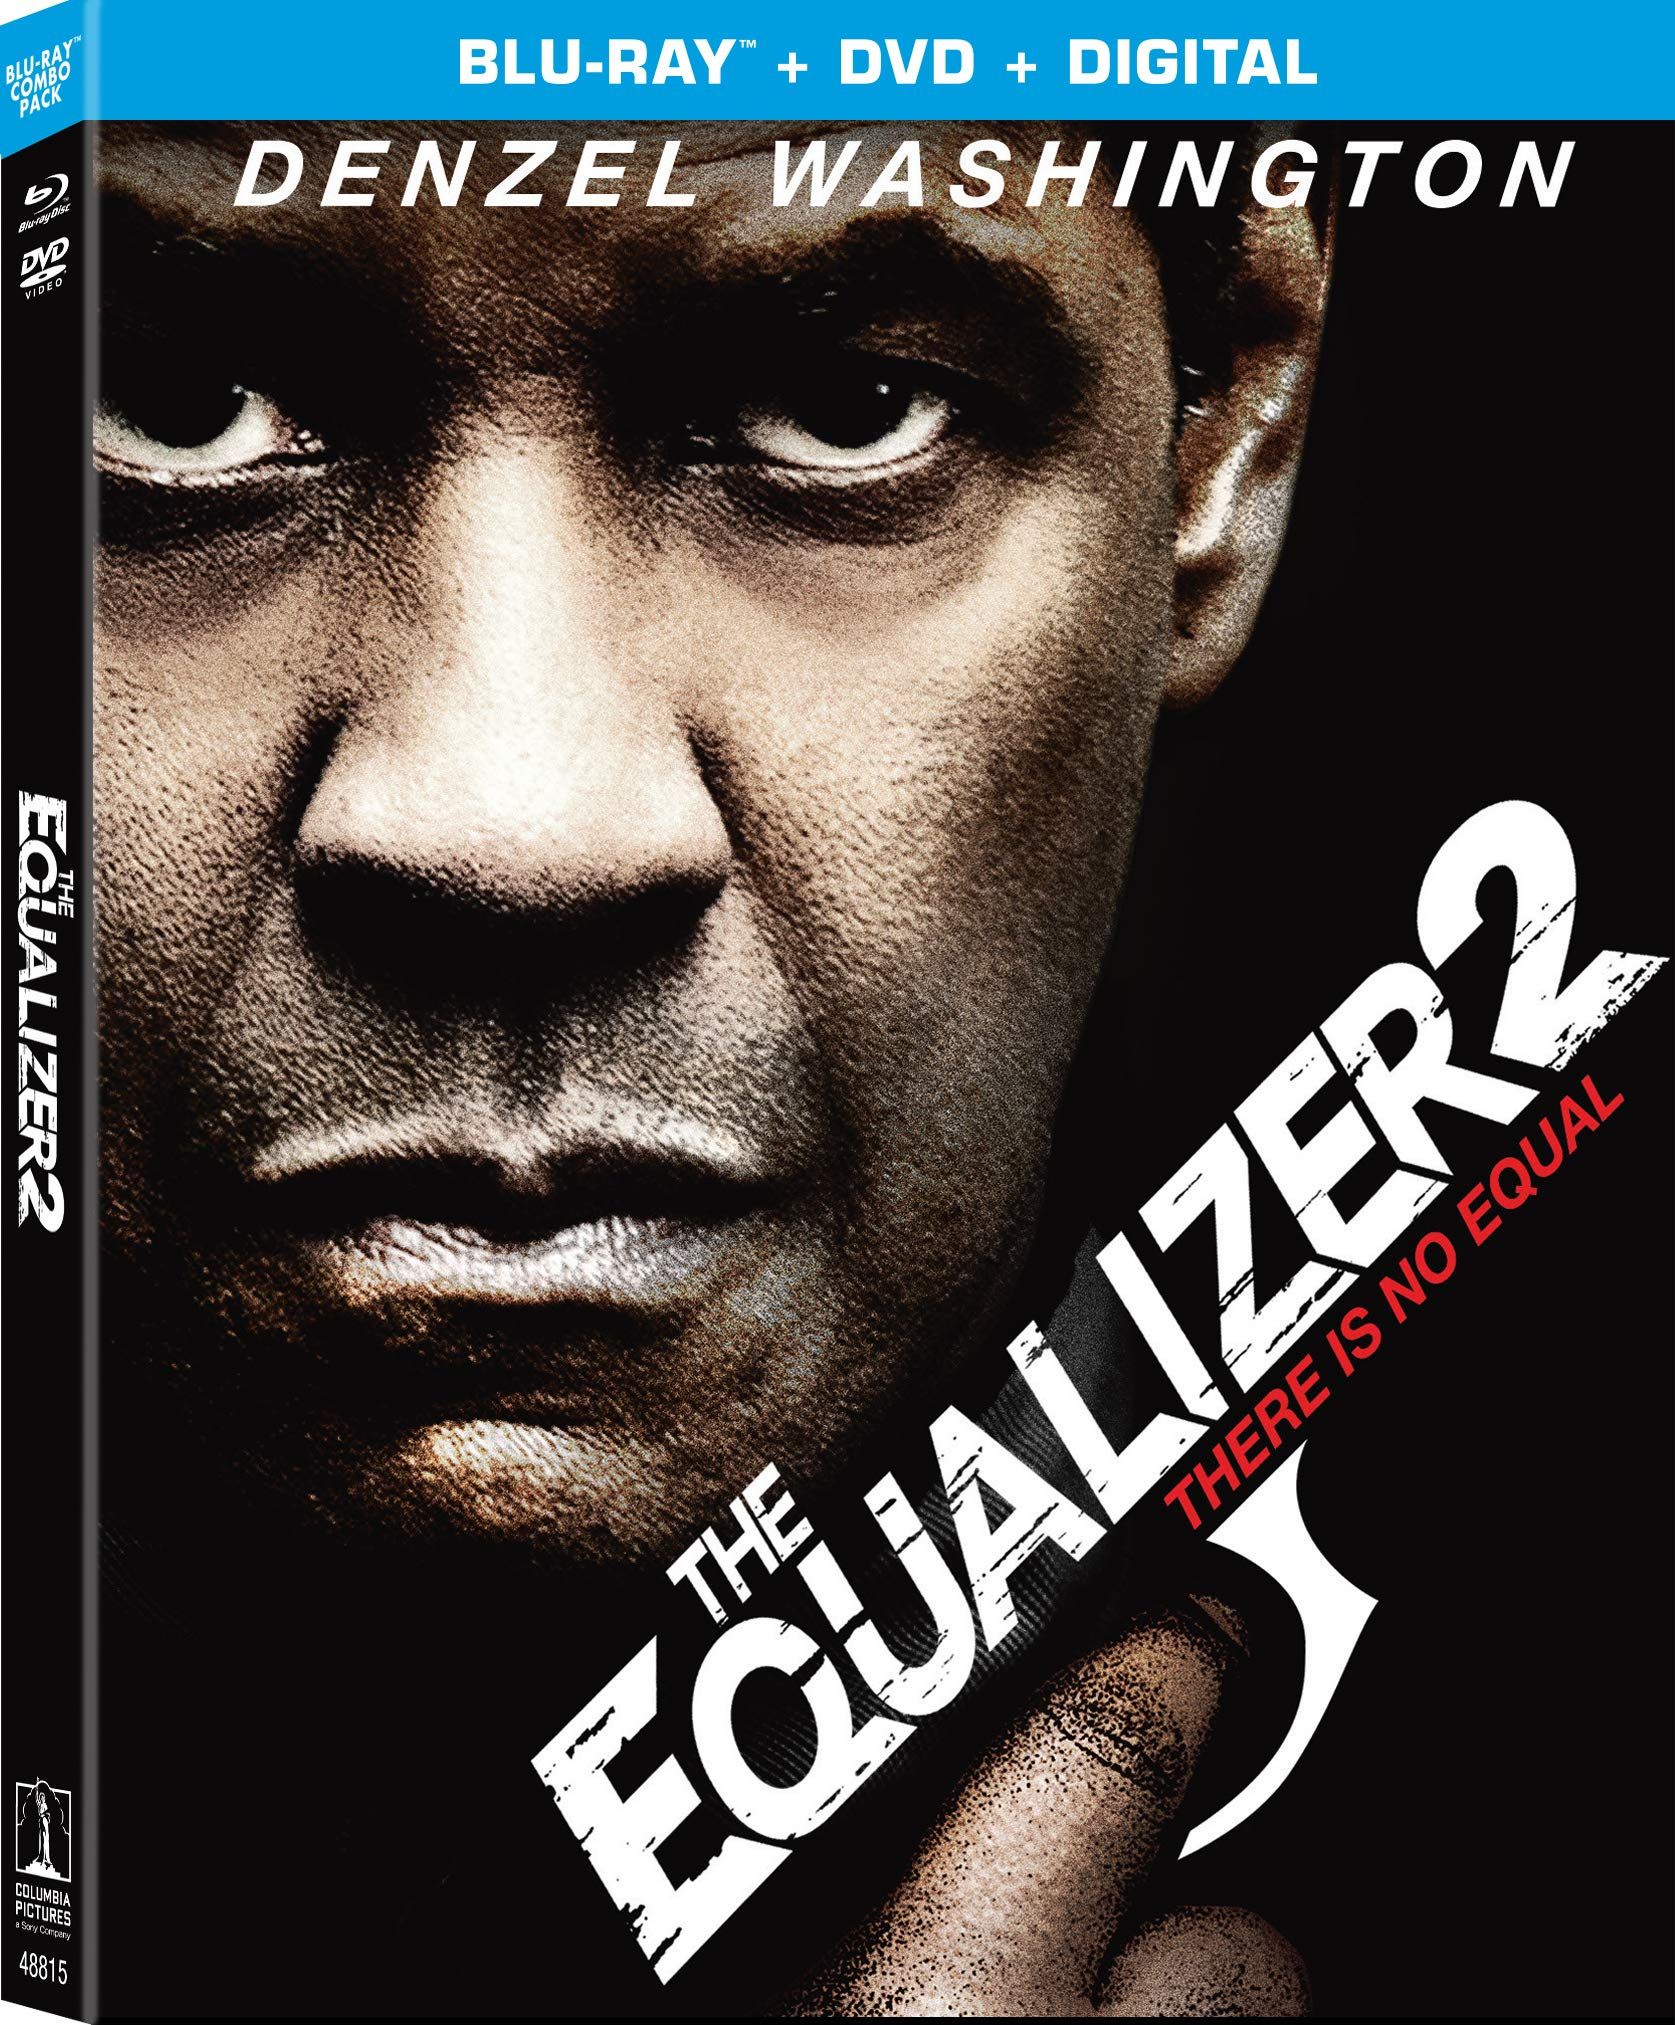 Blu-ray : The Equalizer 2 (With DVD, 2 Pack, Digital Copy)